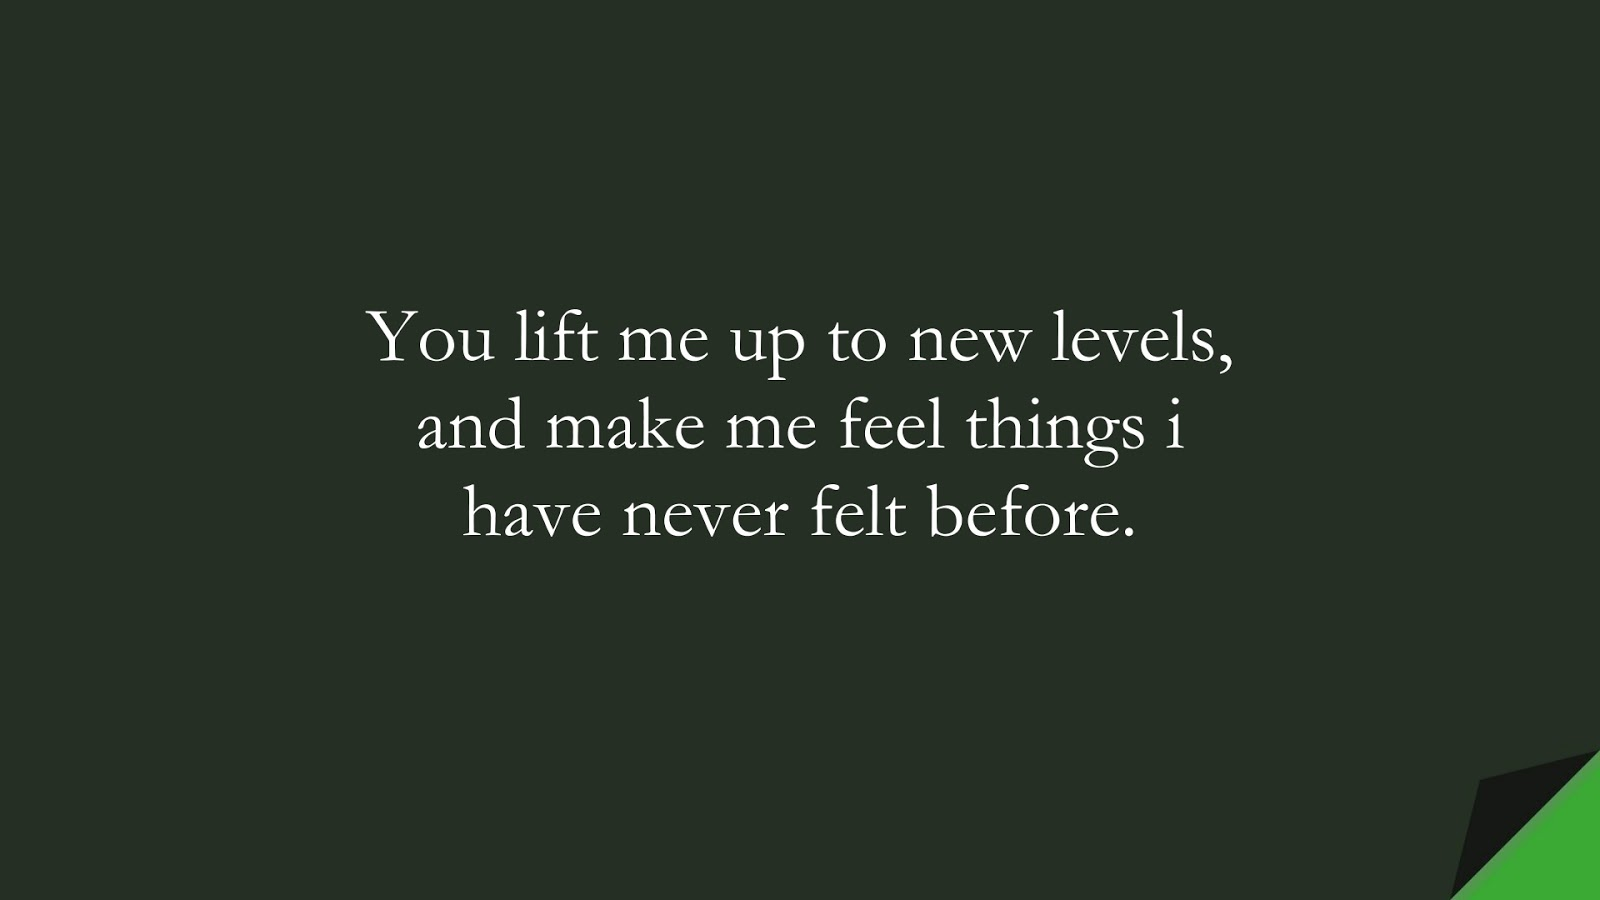 You lift me up to new levels, and make me feel things i have never felt before.FALSE